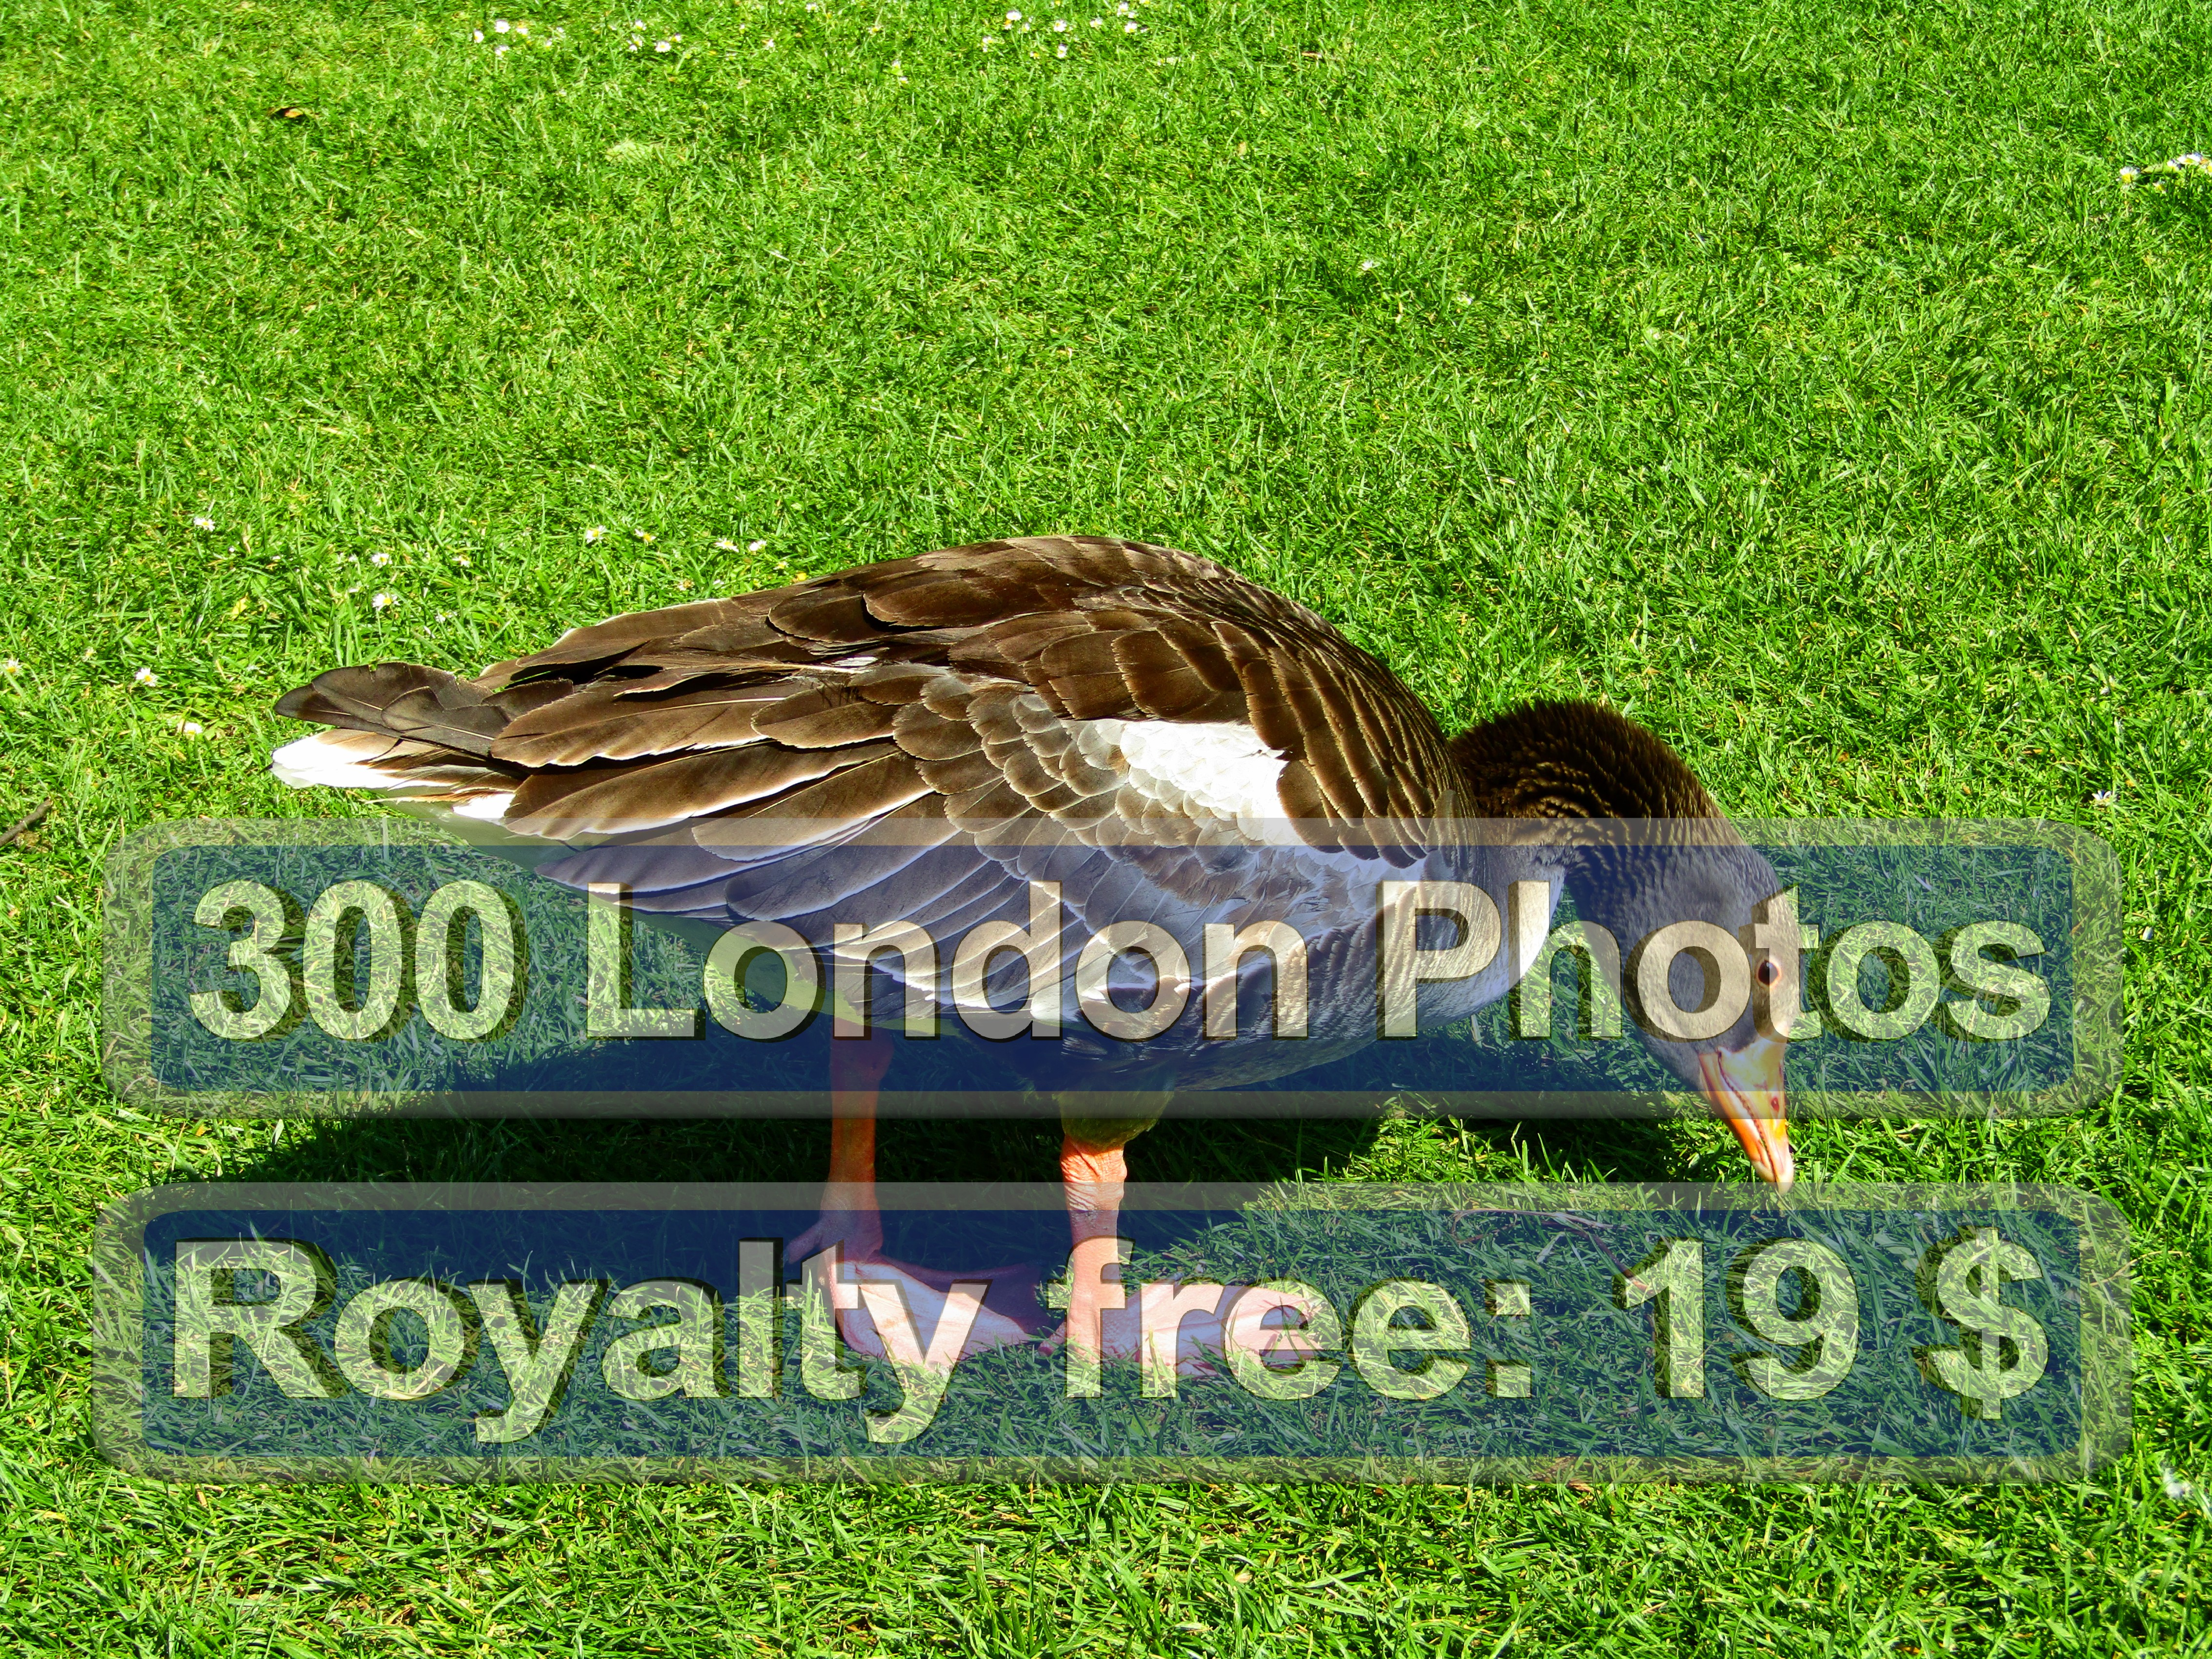 London Queen Photo